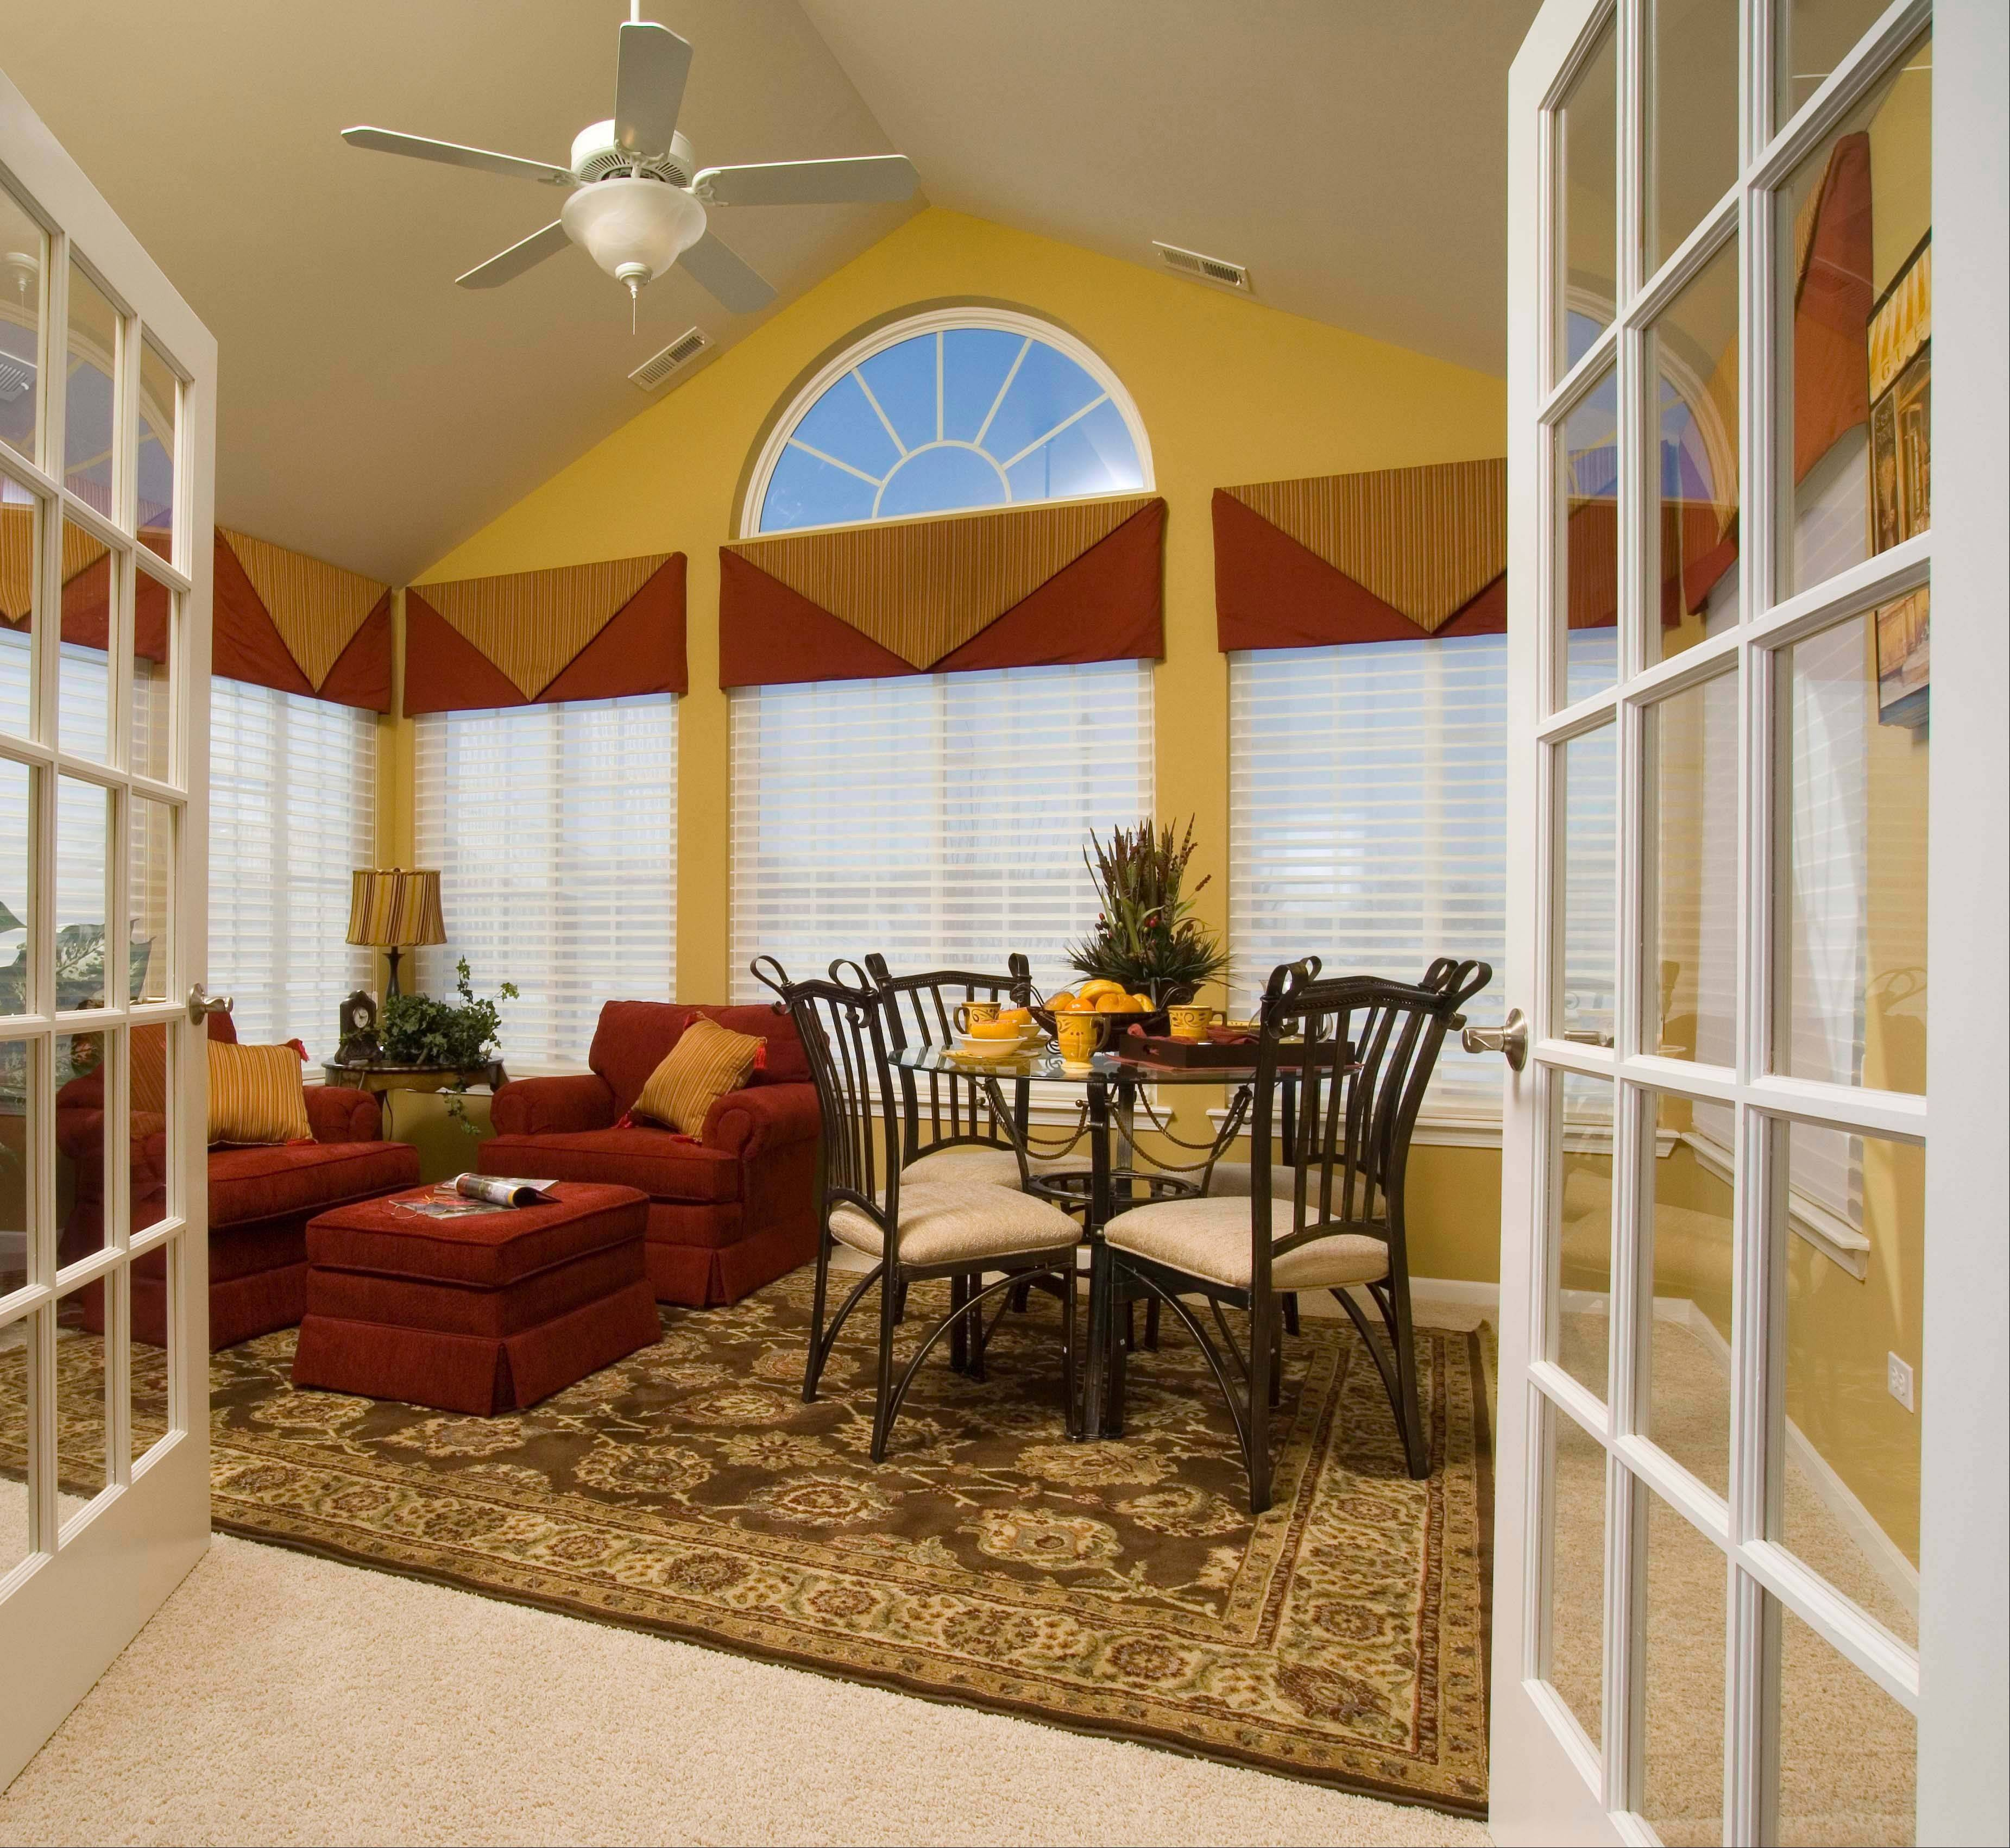 Epcon Communities' four-season room is included in the base price of the ranch villa homes being offered in Maples at the Sonatas in Woodstock.